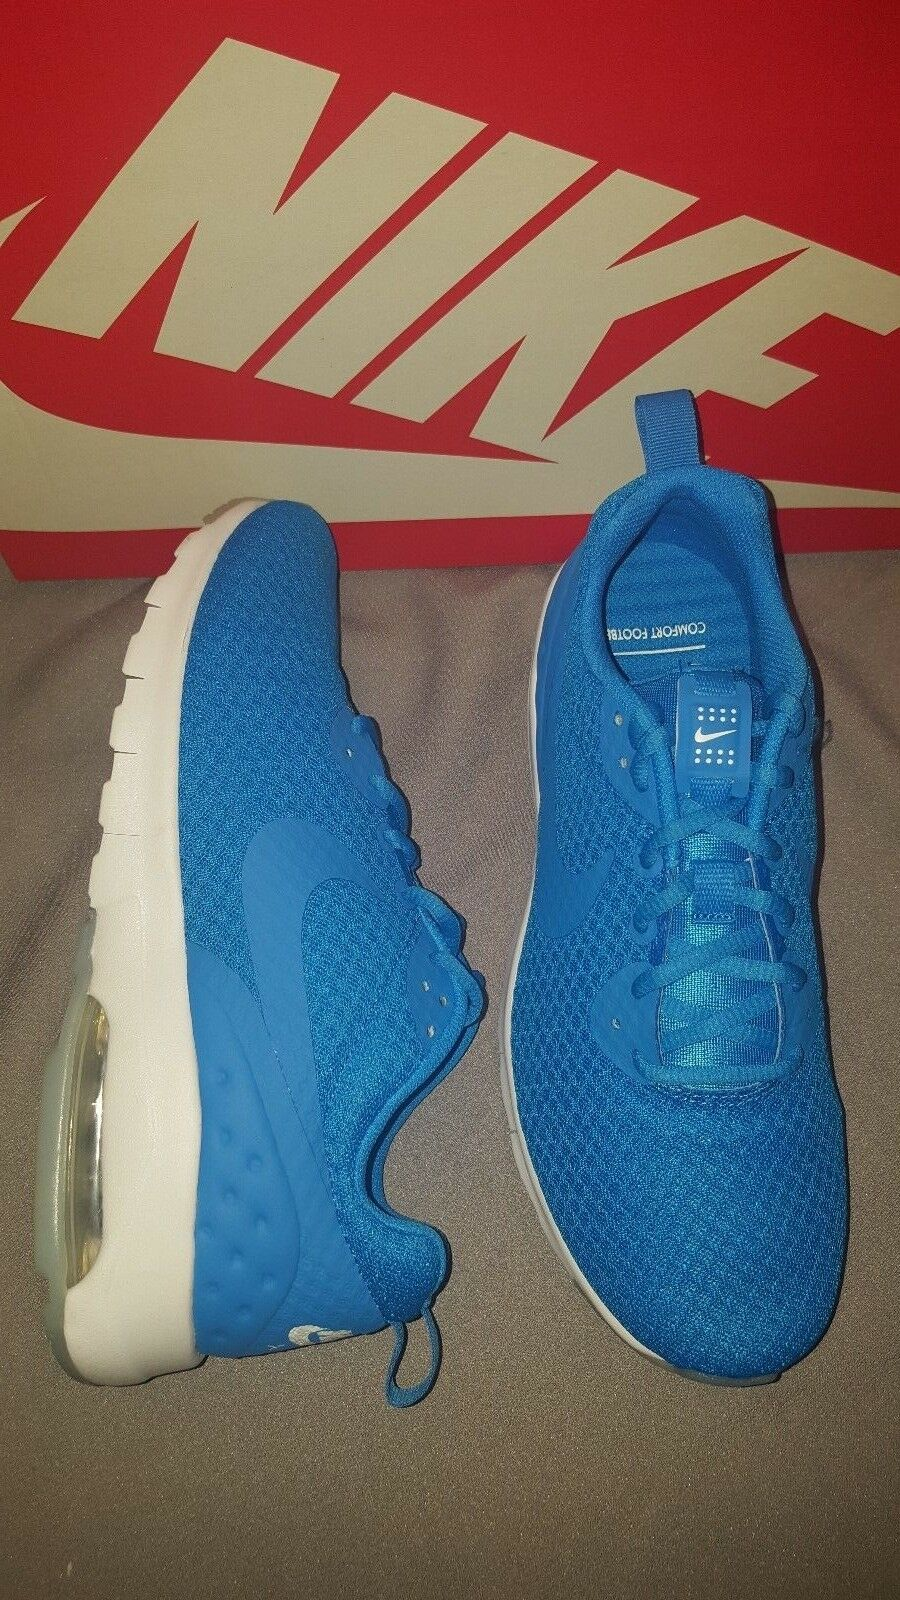 NIKE AIR MAX MOTION LW MENS SHOES PHOTO BLUE WHITE US 8 NEW IN BOX